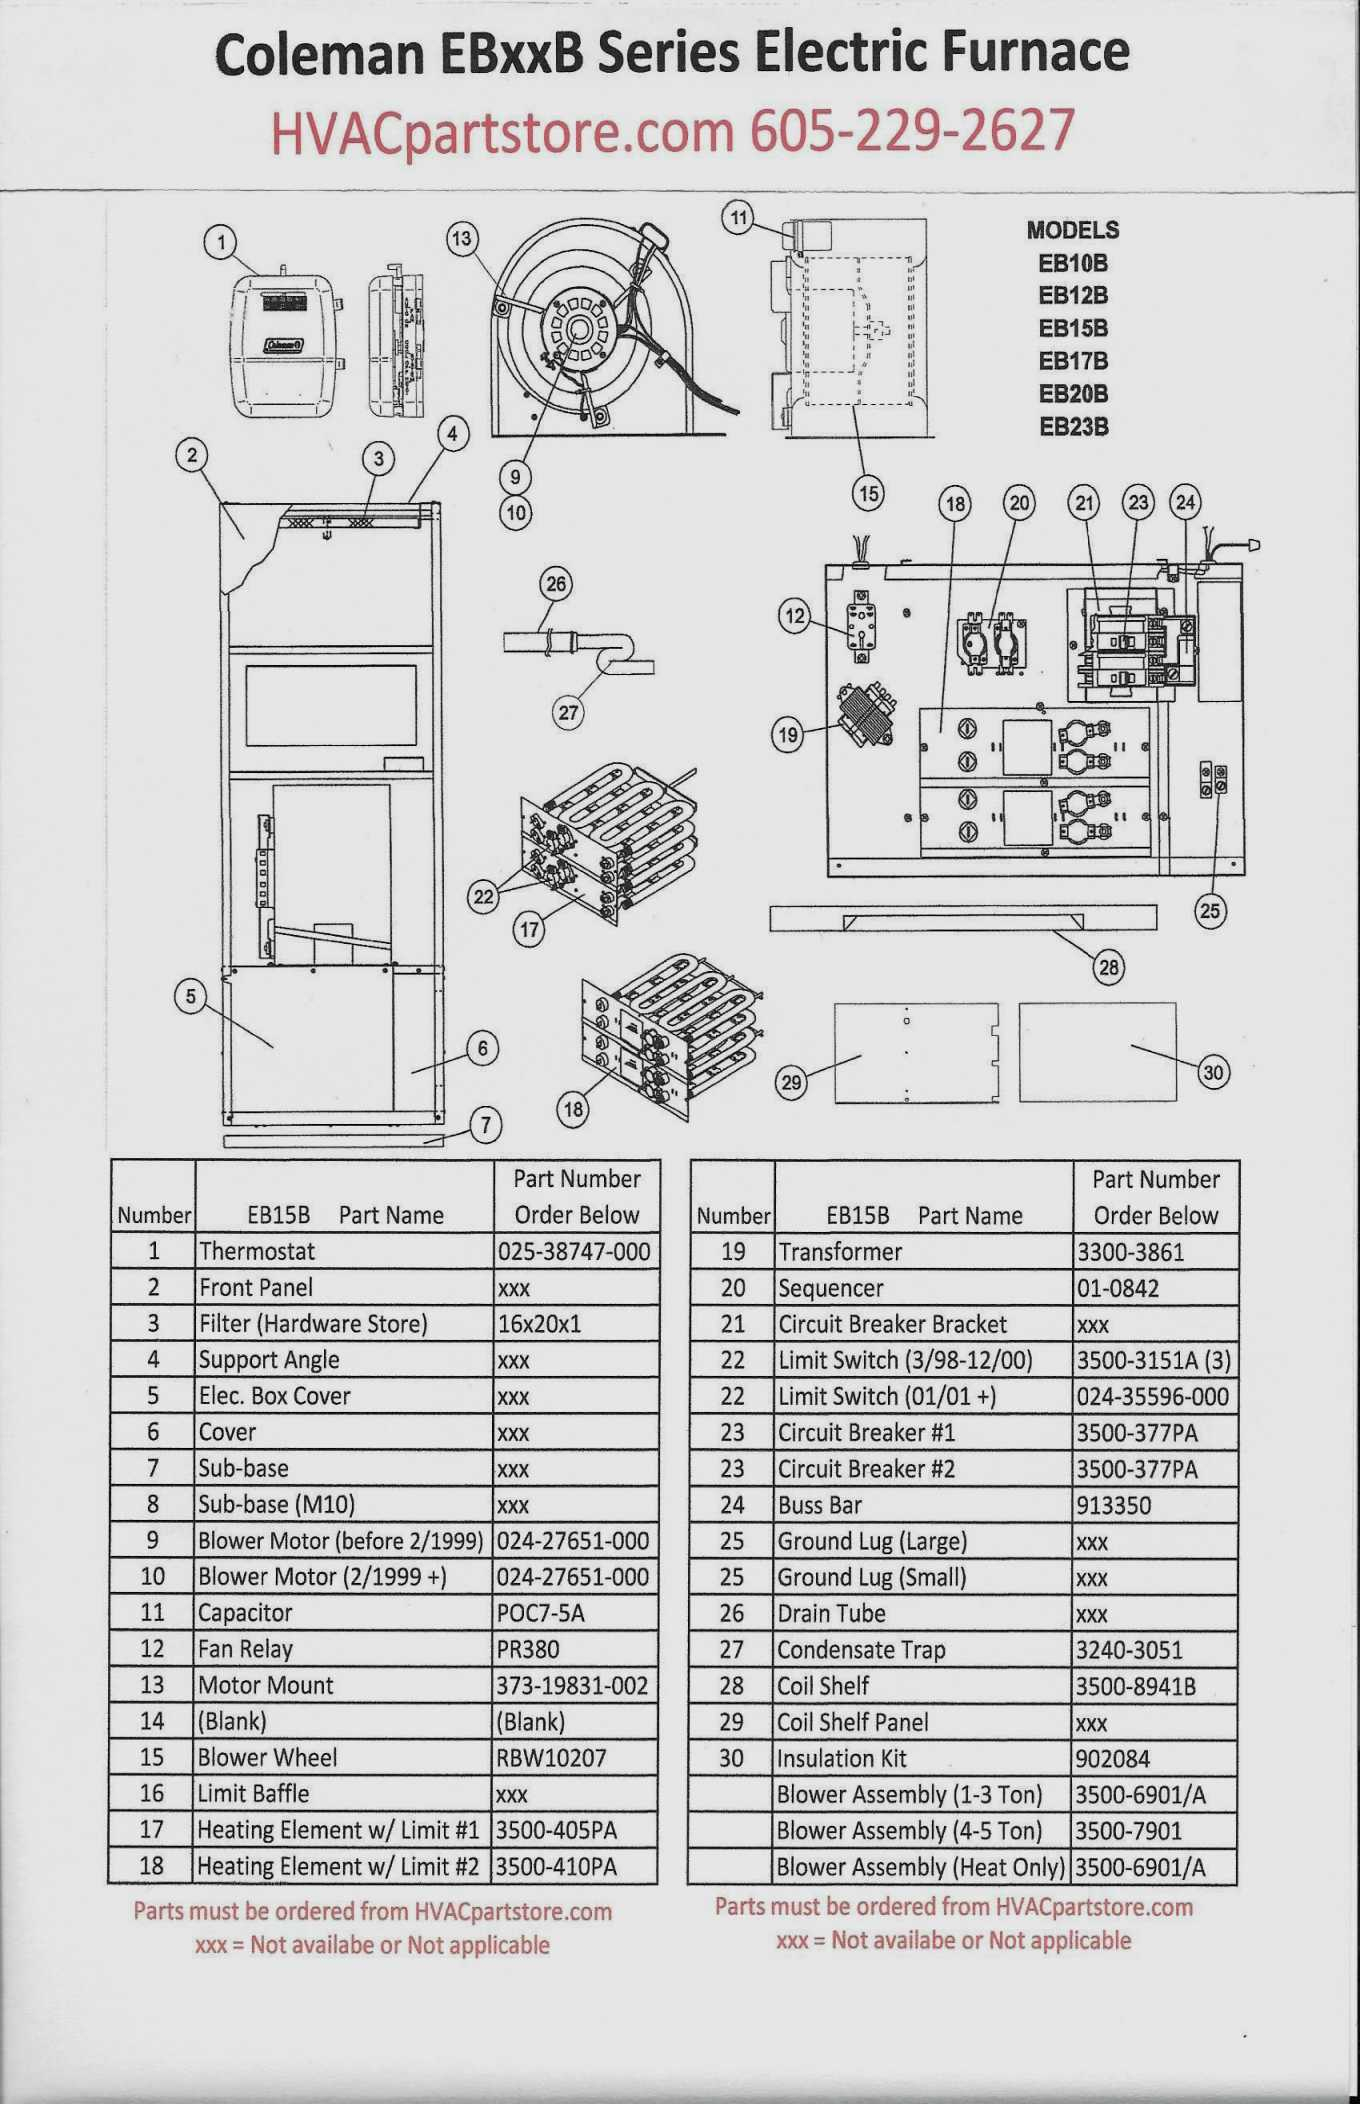 Goodman Electric Furnace Sequencer Wiring Diagram | Wiring Diagram - Electric Furnace Sequencer Wiring Diagram